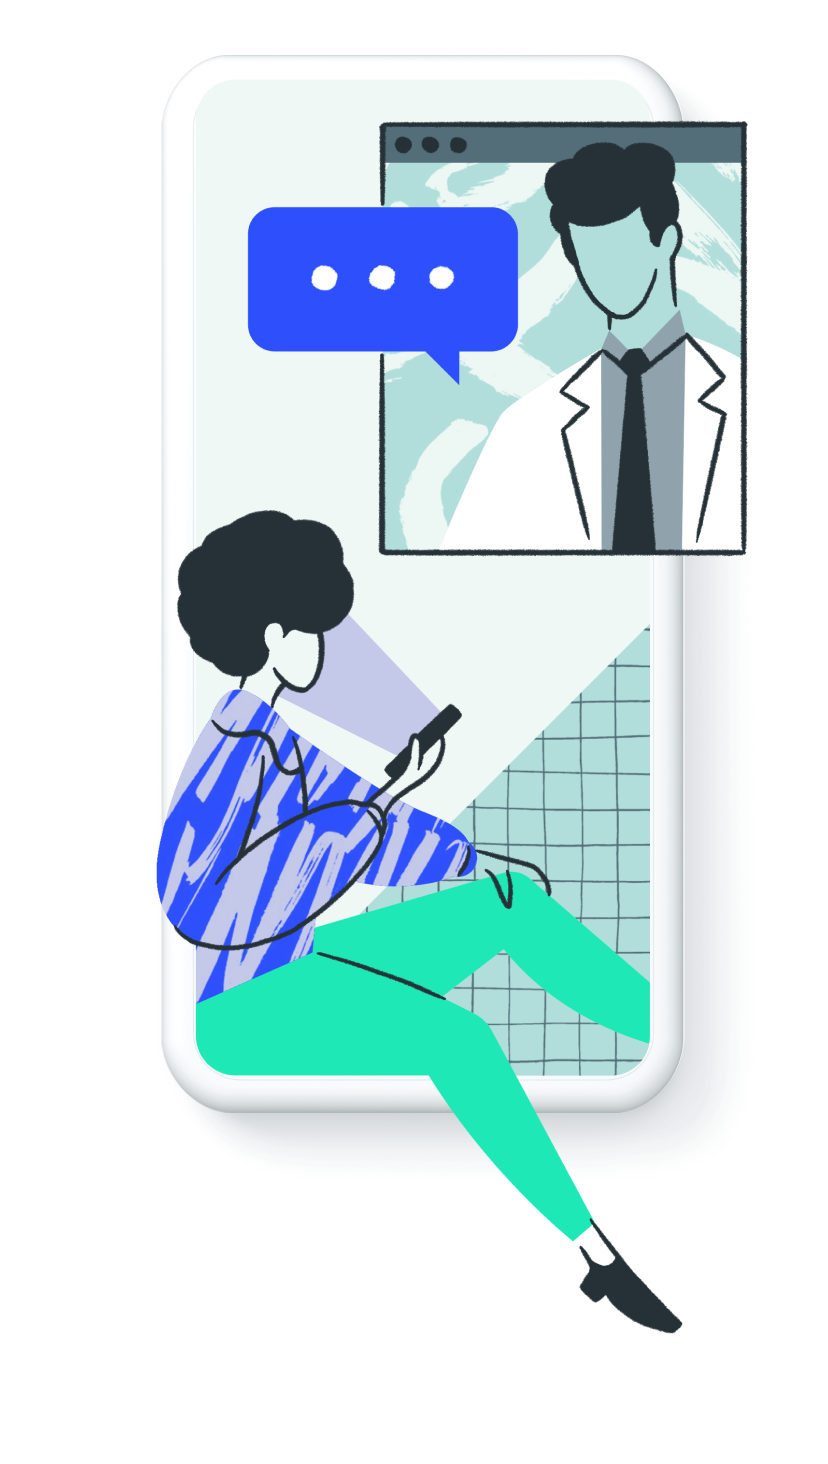 Illustration of a woman on a video consultation with a male doctor